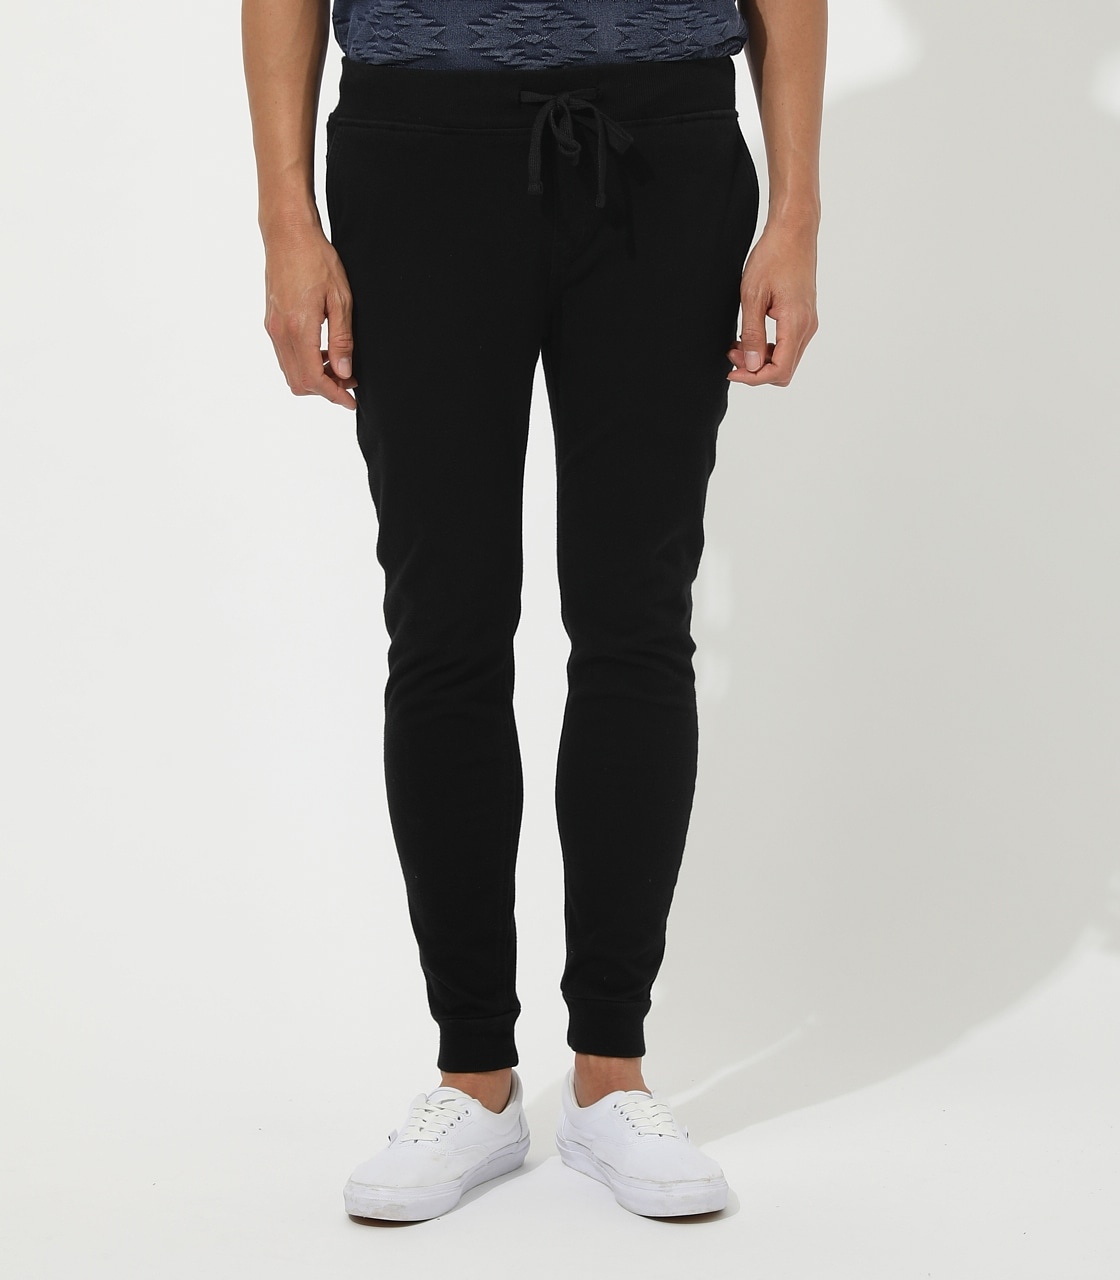 【AZUL BY MOUSSY】EASY ACTION SLIM JOGGER 詳細画像 BLK 4